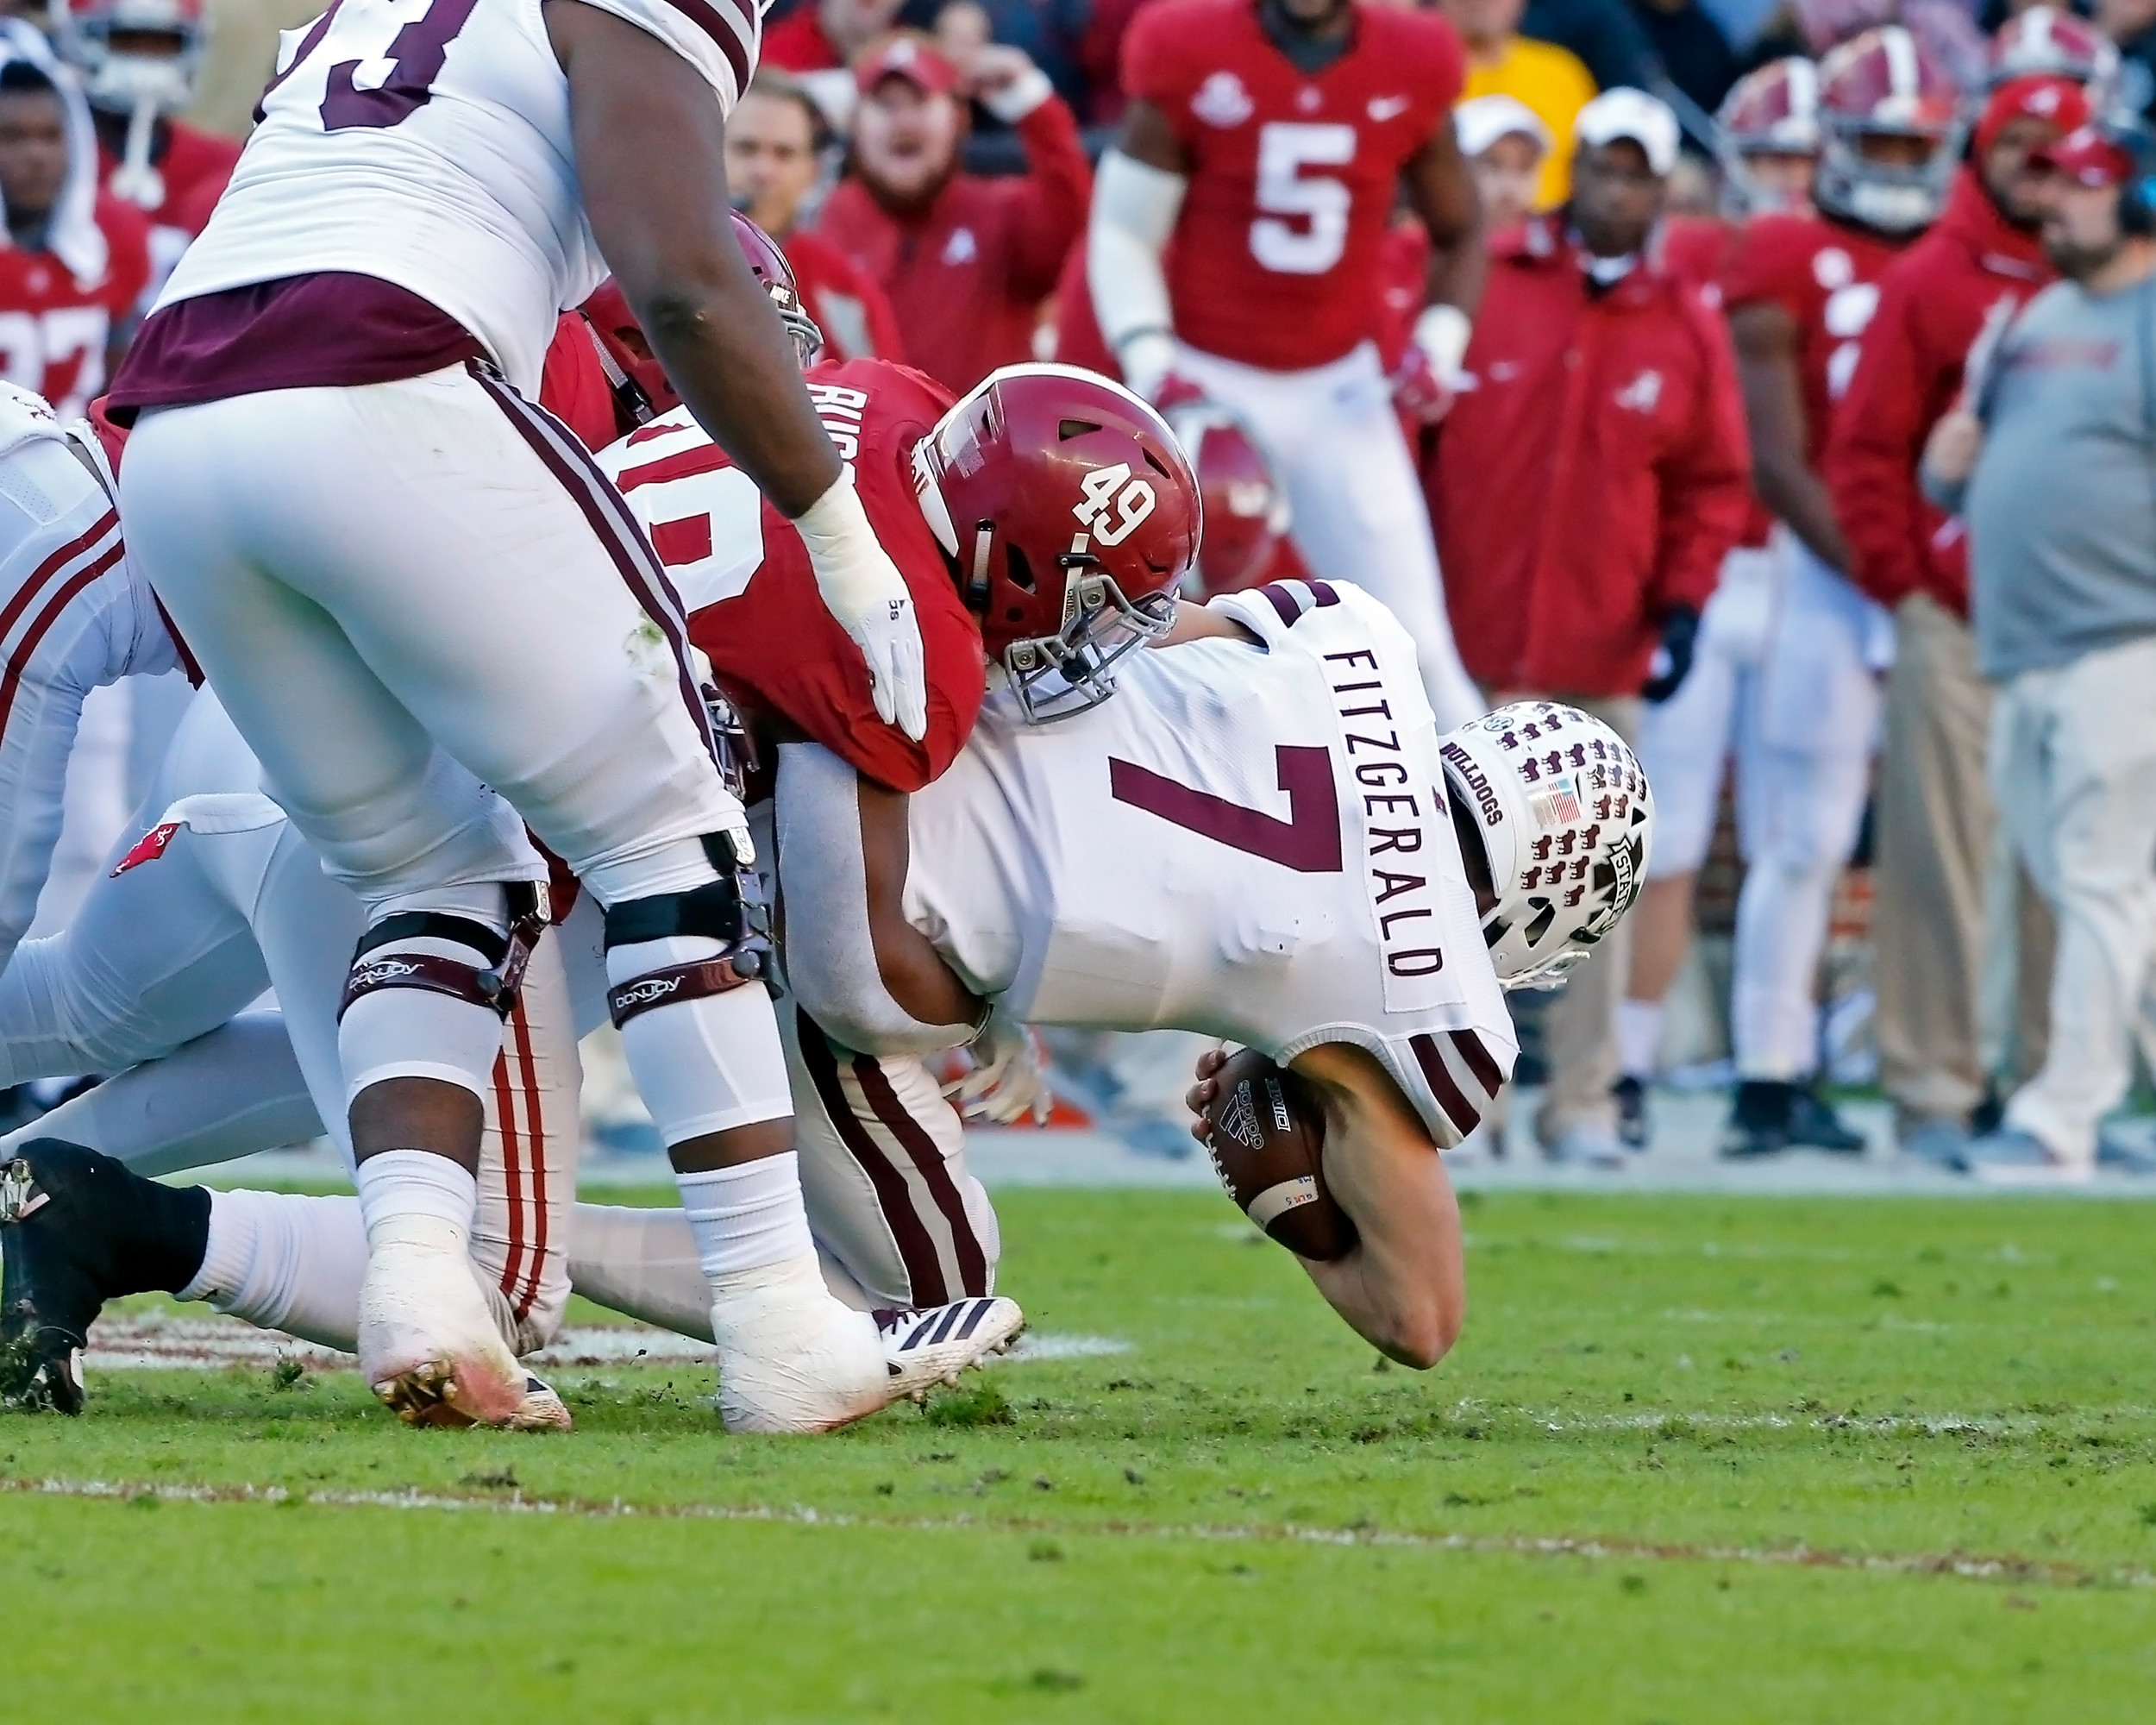 Alabama Crimson Tide defensive lineman Isaiah Buggs (49) sacks Mississippi State Bulldogs quarterback Nick Fitzgerald (7) during the game between Mississippi State and the University of Alabama at Bryant-Denny Stadium in Tuscaloosa, Al. Credit: Jason Clark / Daily Mountain Eagle